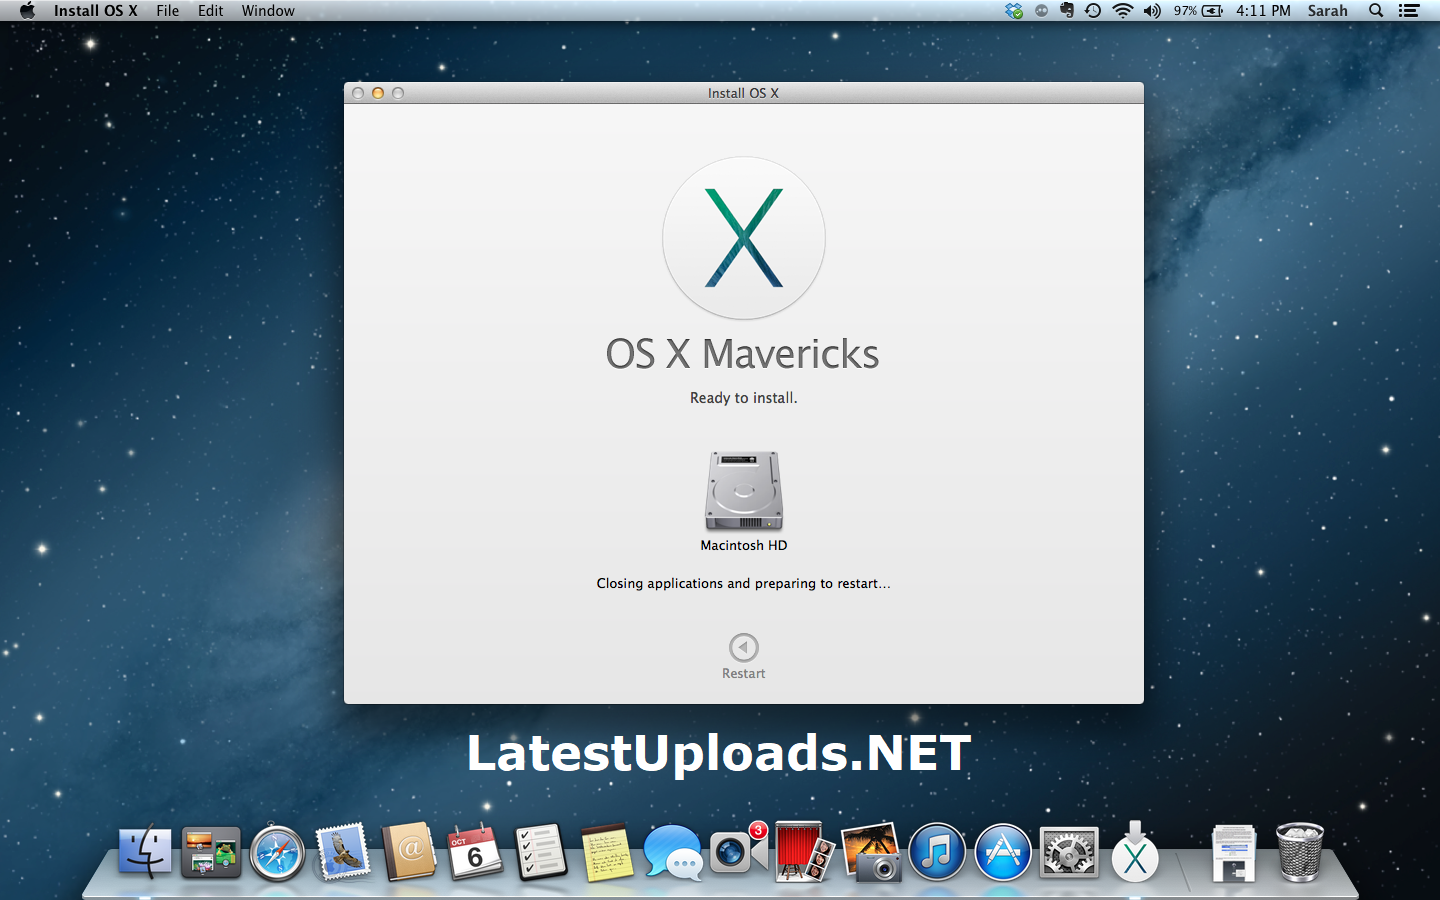 MAC OS X Mavericks Full Download, MAC OS X Mavericks Full Crack Download, MAC OS X Mavericks Full DMG Download, MAC OS X Mavericks Download